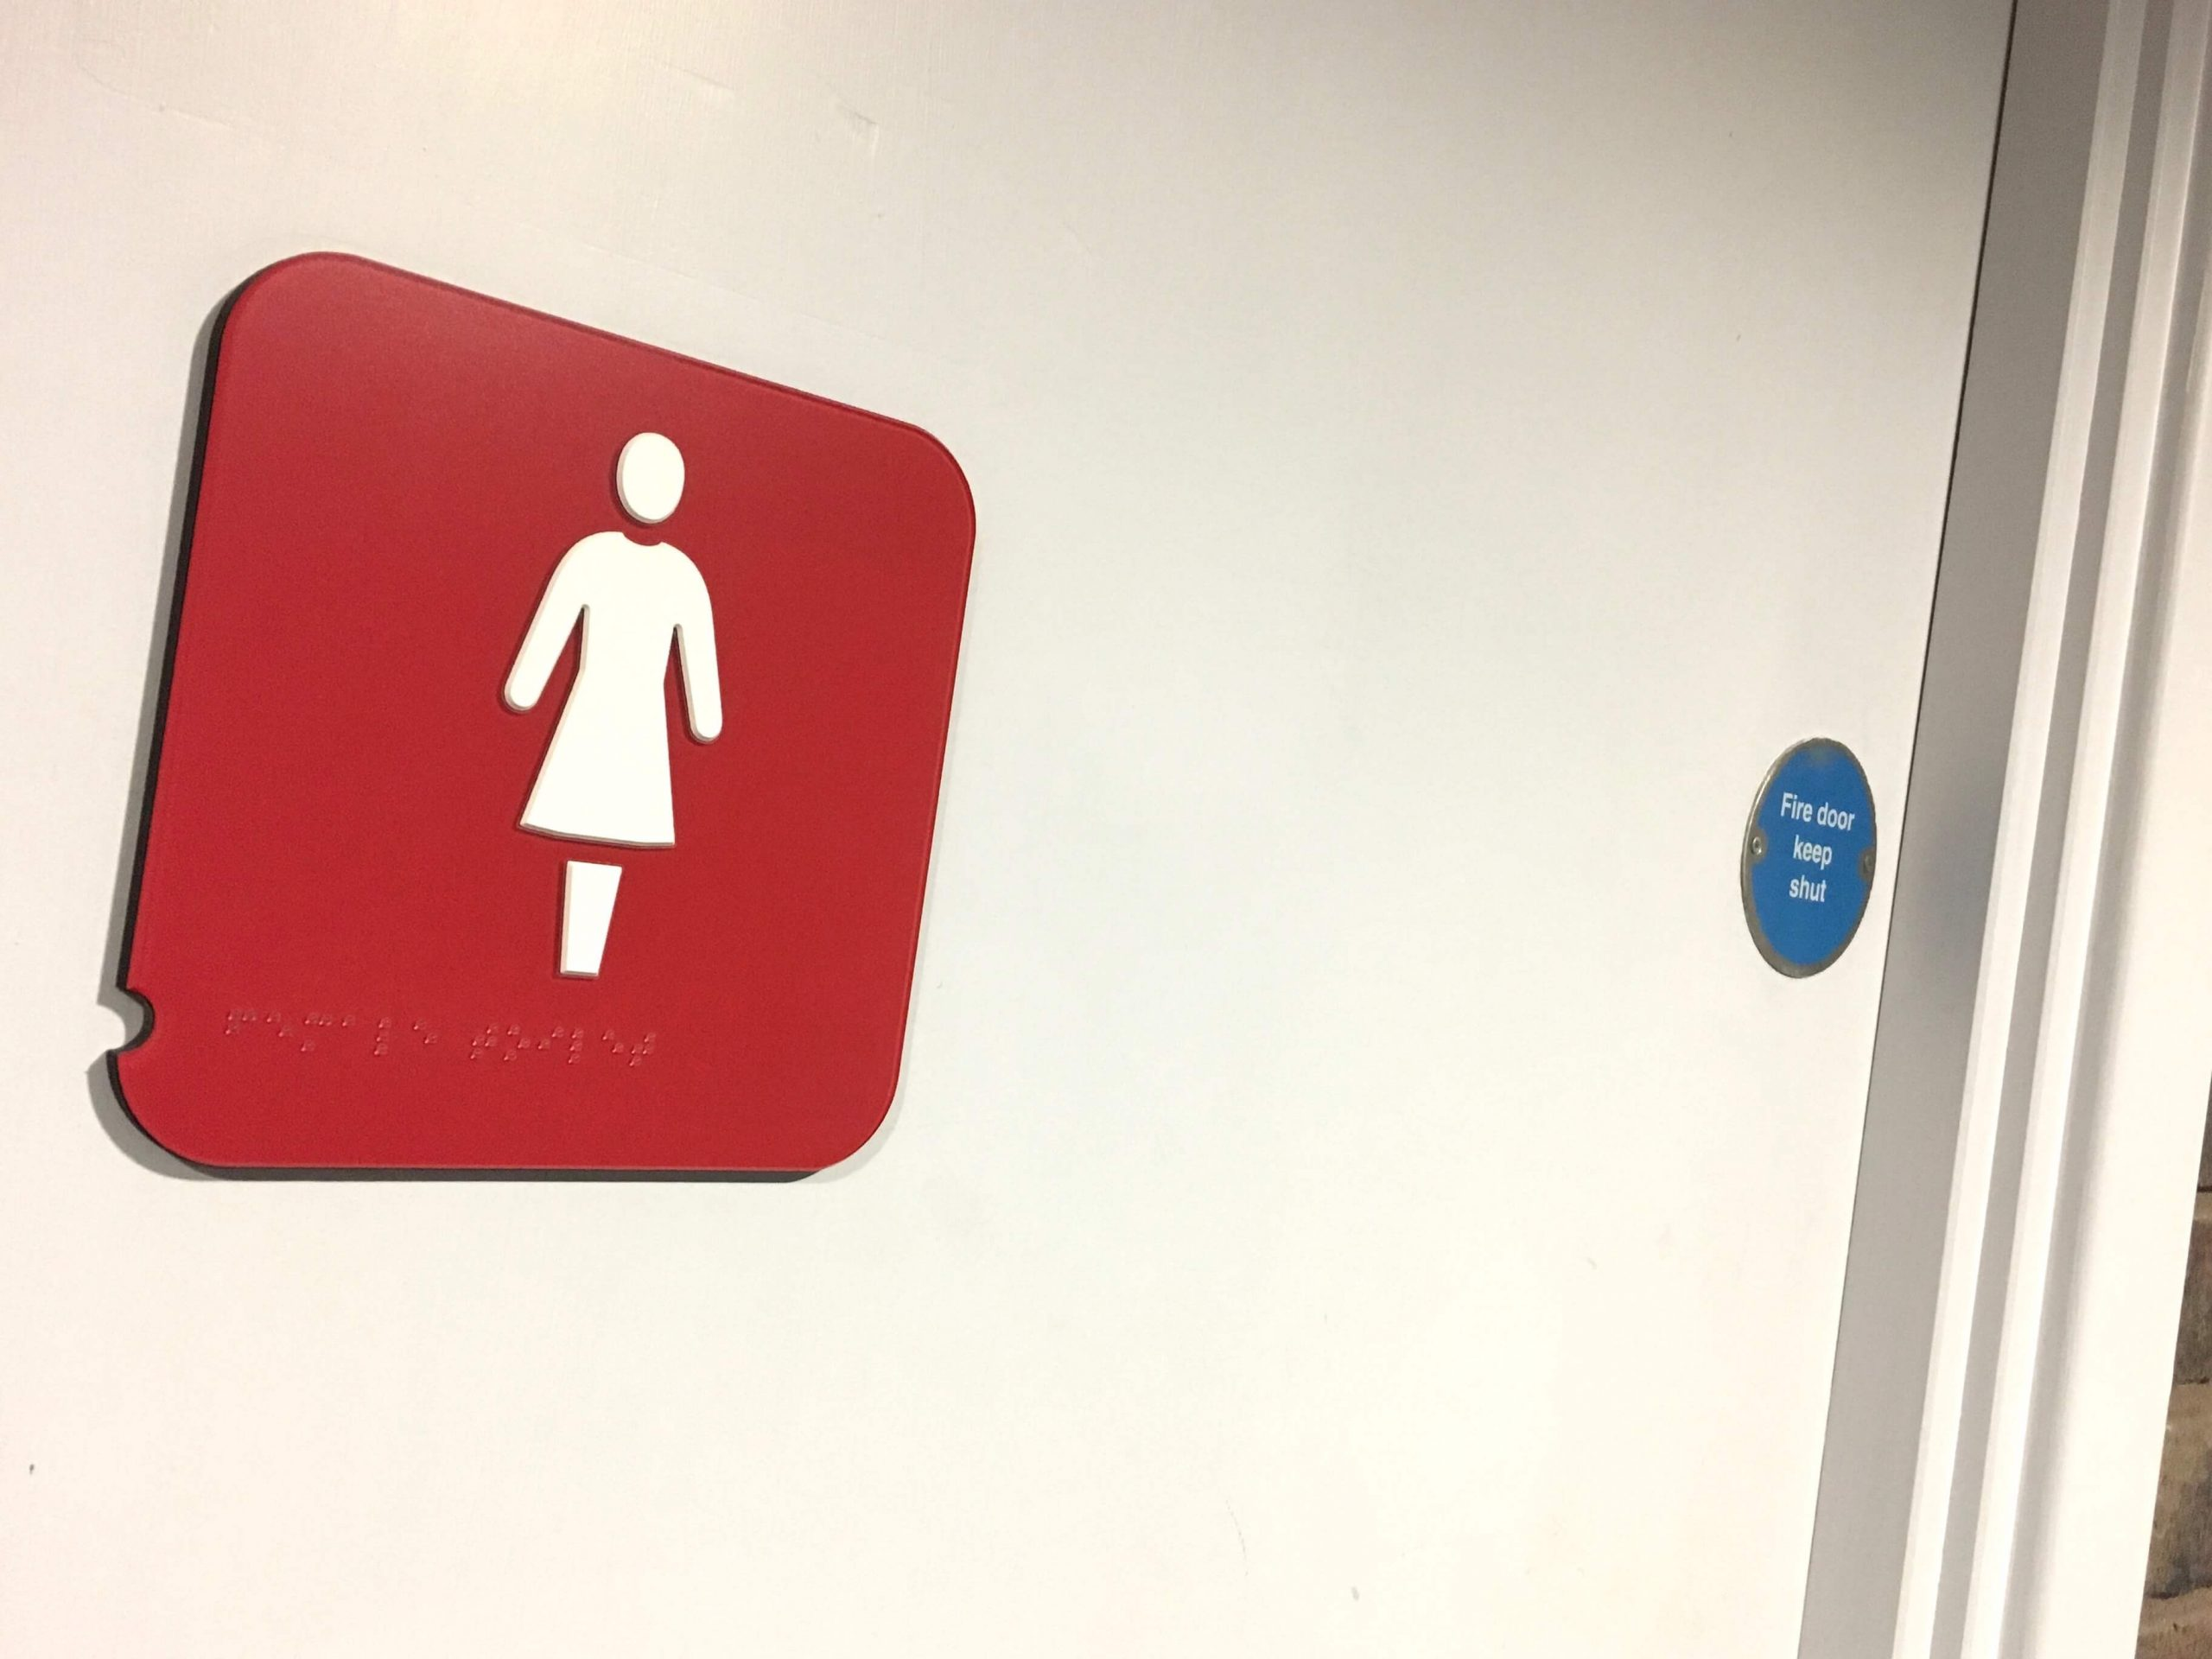 Toilet door signage with pictograms